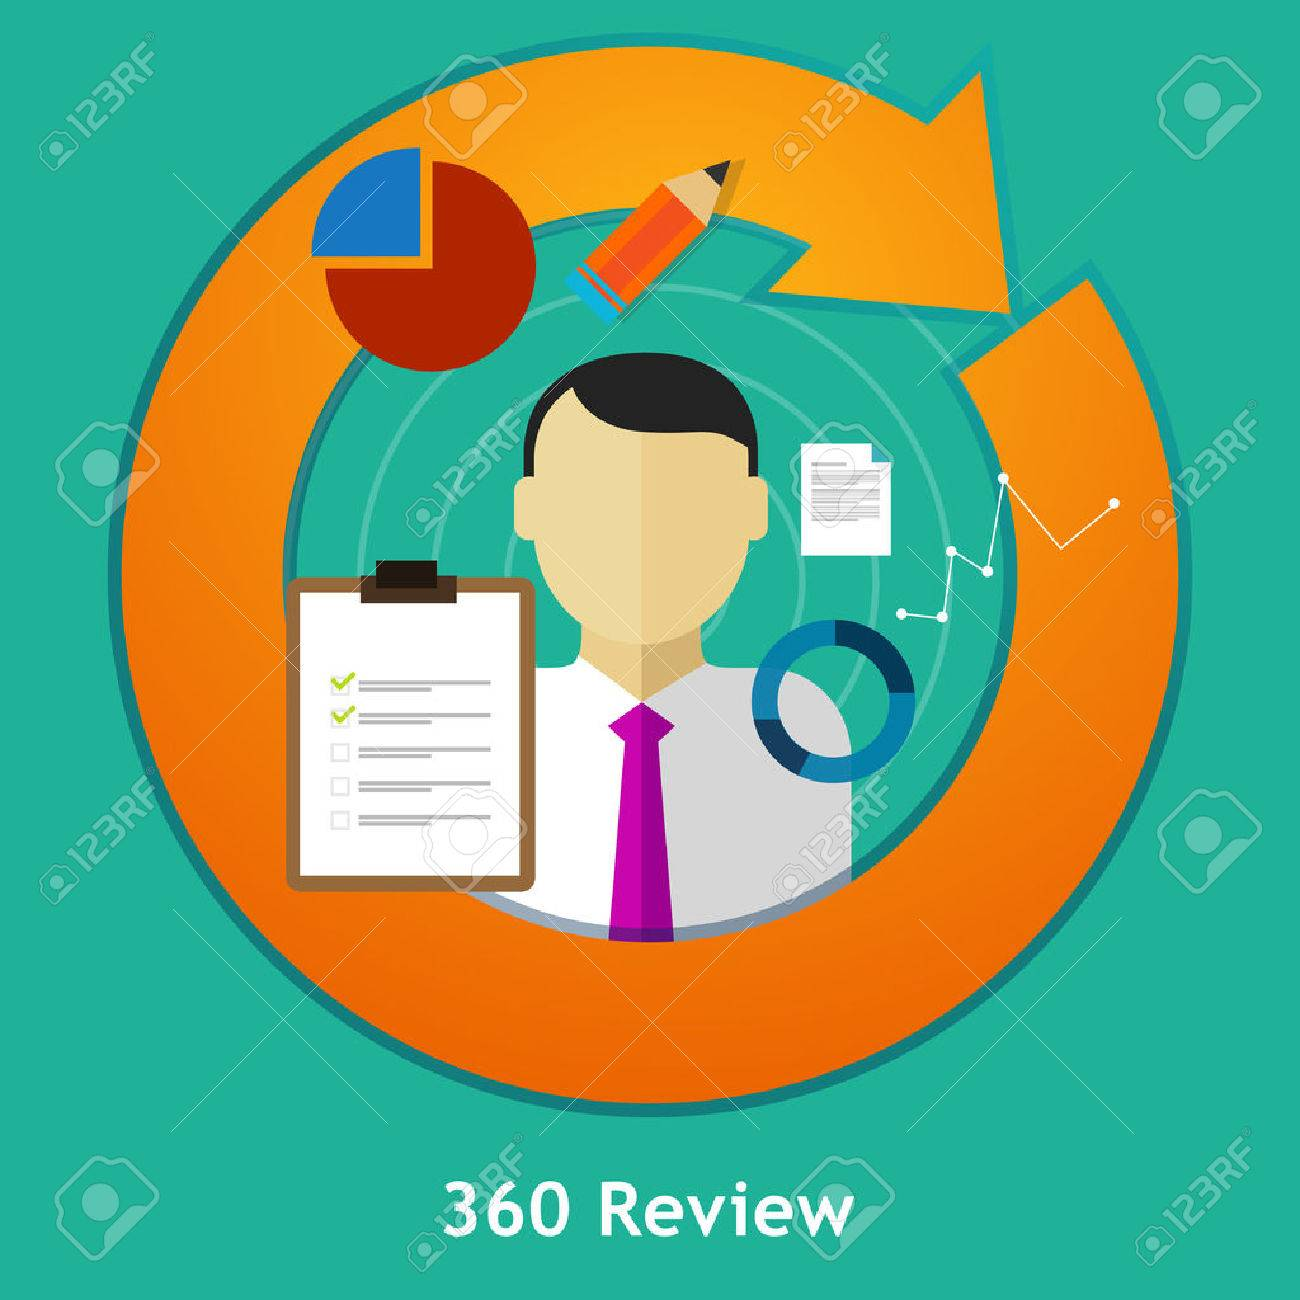 360 Degree Review Feedback Evaluation Performance Employee Human – 360 Evaluation